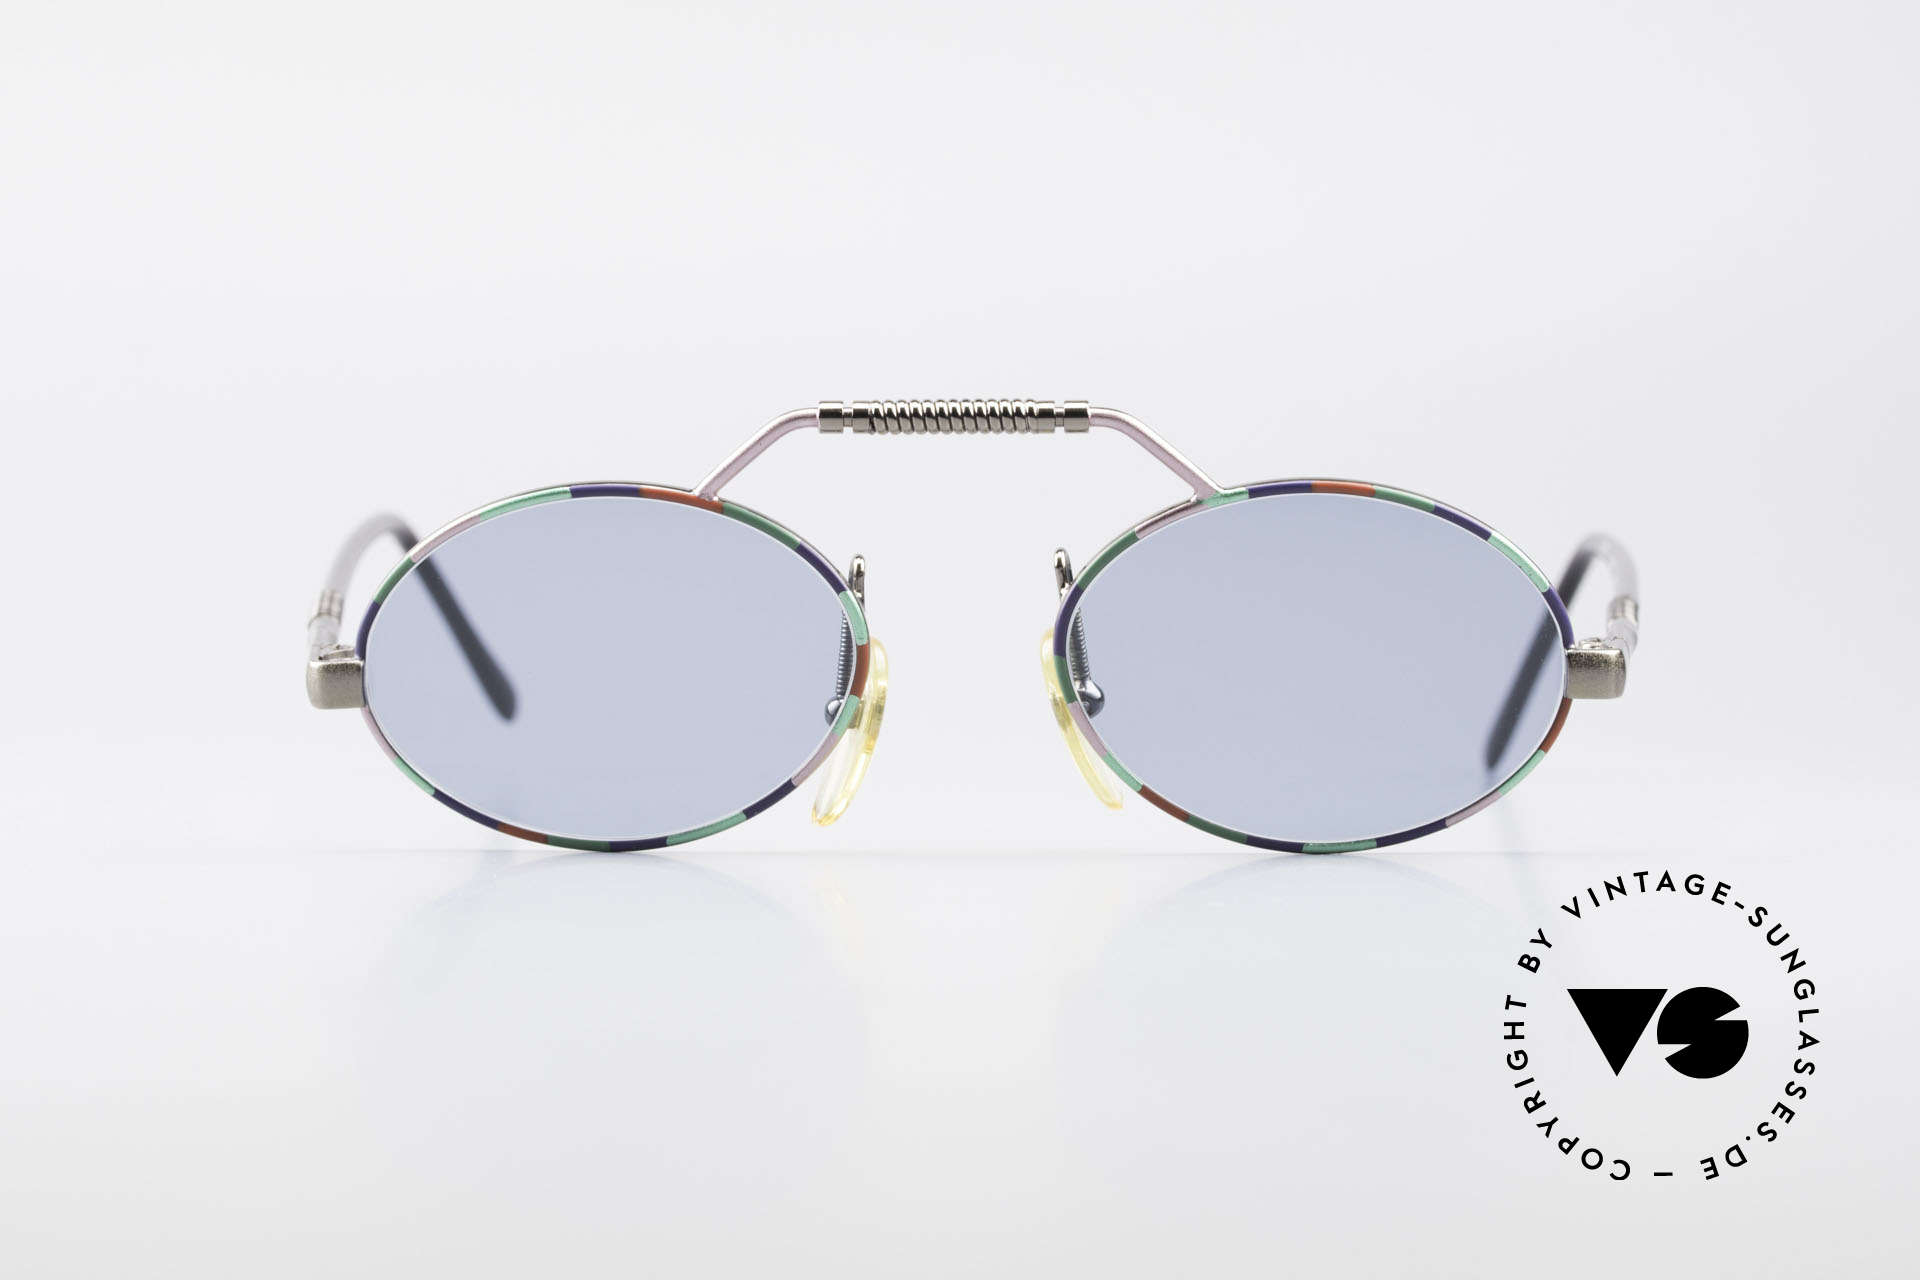 Taxi 2104 by Casanova 80's Designer Sunglasses, very interesting frame construction and frame pattern, Made for Men and Women